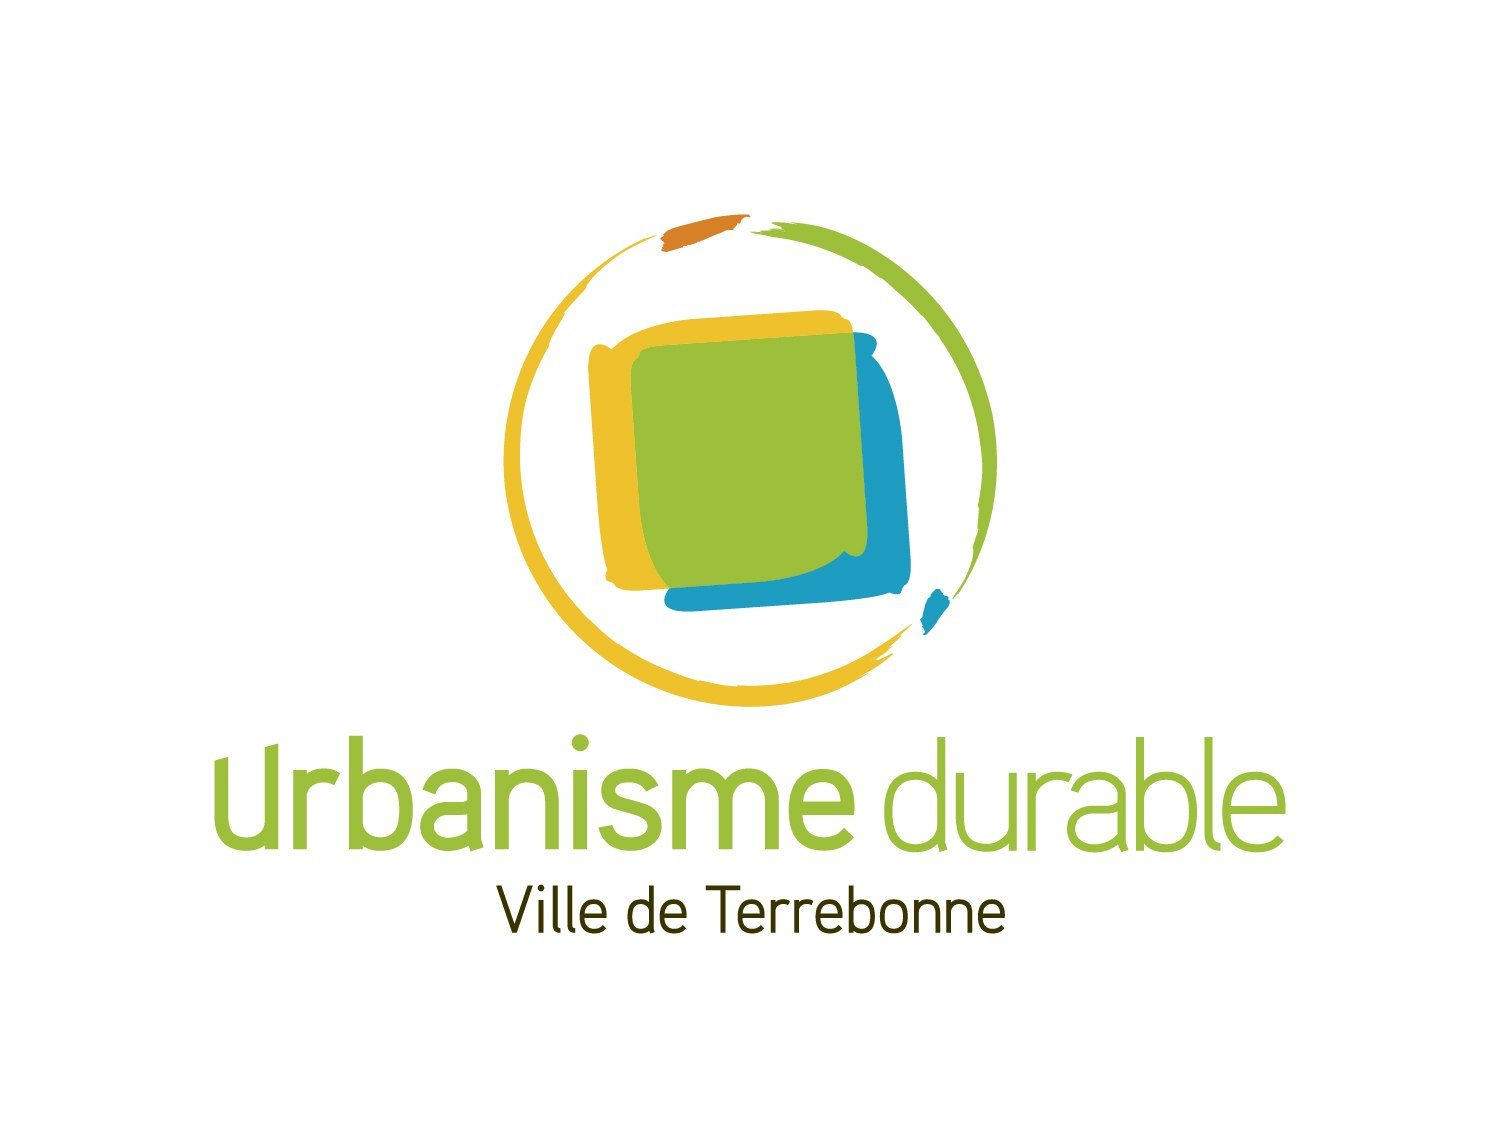 logo_urbanisme_durable